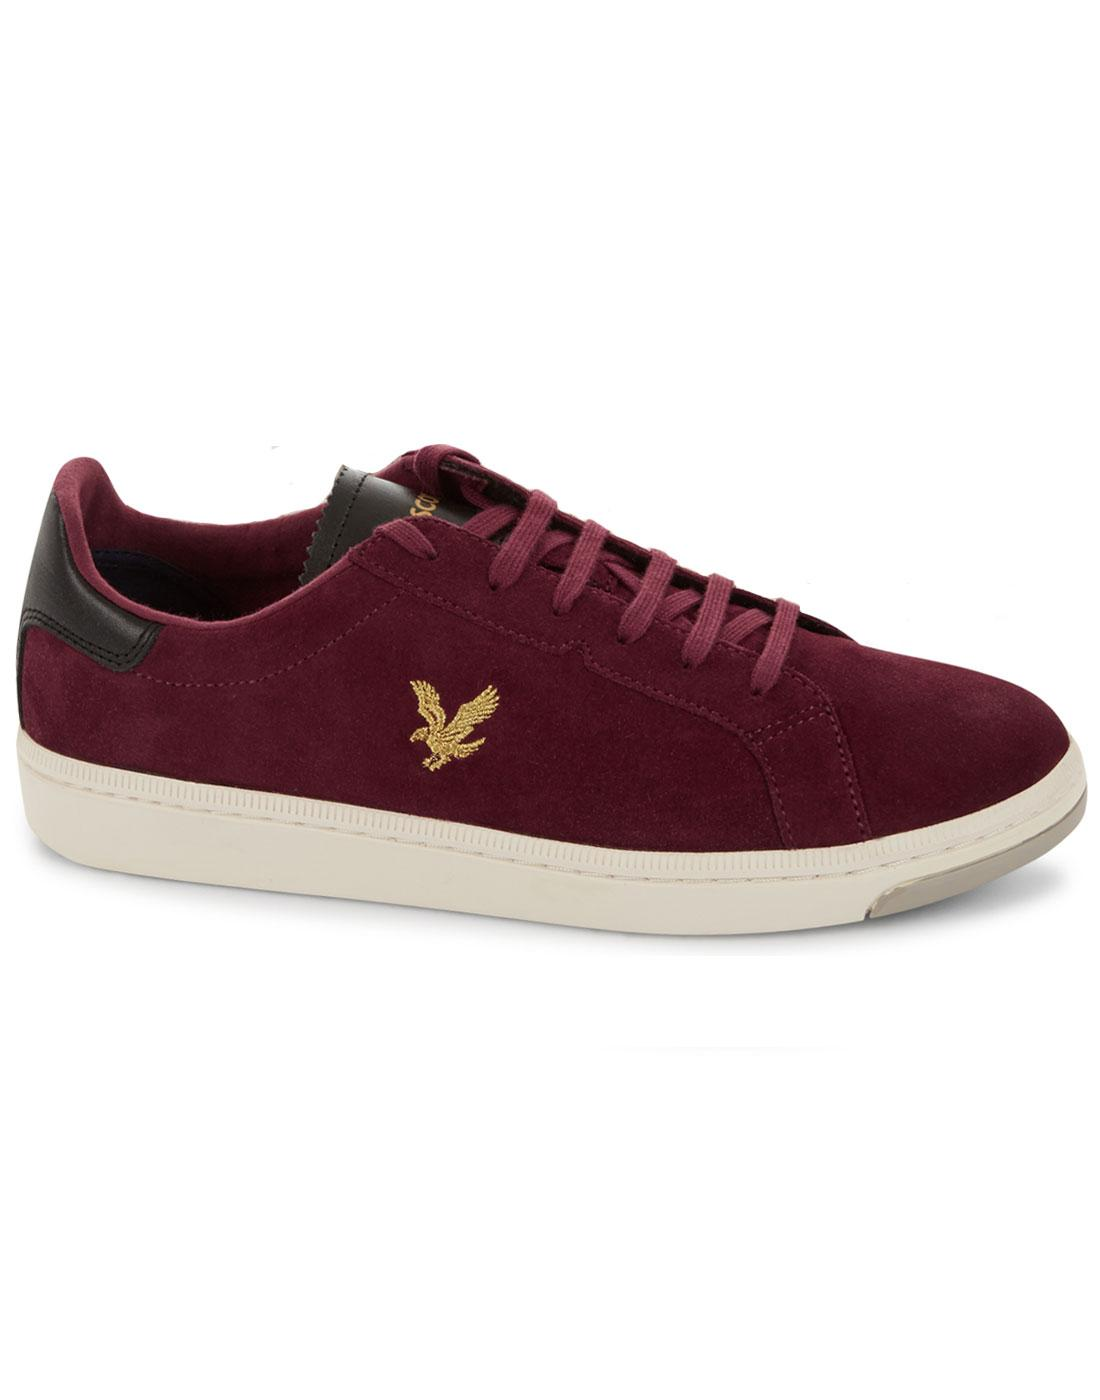 Burchill LYLE & SCOTT Retro Suede Trainers CLARET